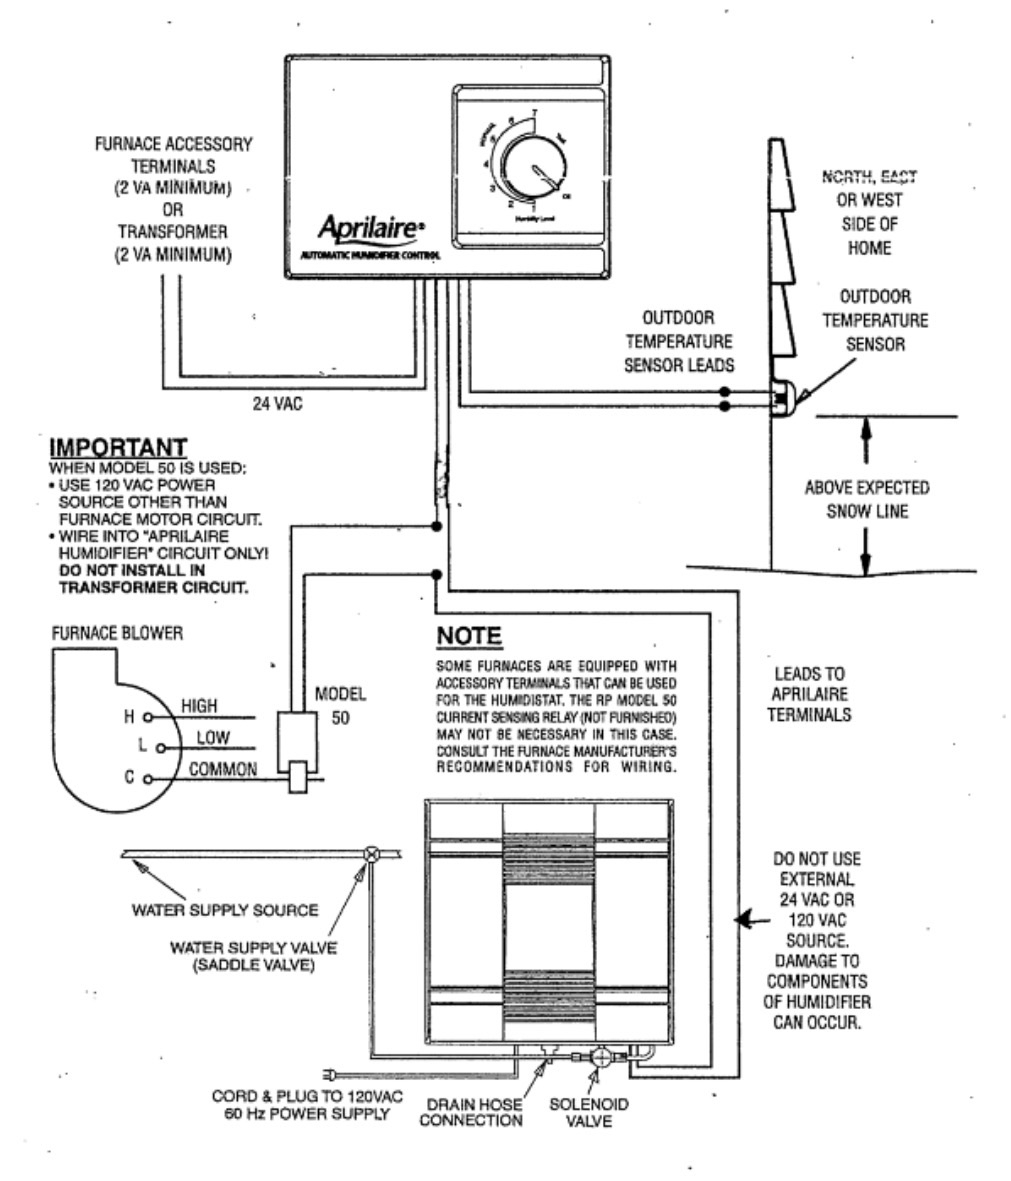 trane xv95 thermostat wiring diagram Download-Trane Weathertron Thermostat Wiringm Xv95 Mercury Xt500c In Wiring Diagram 13-e